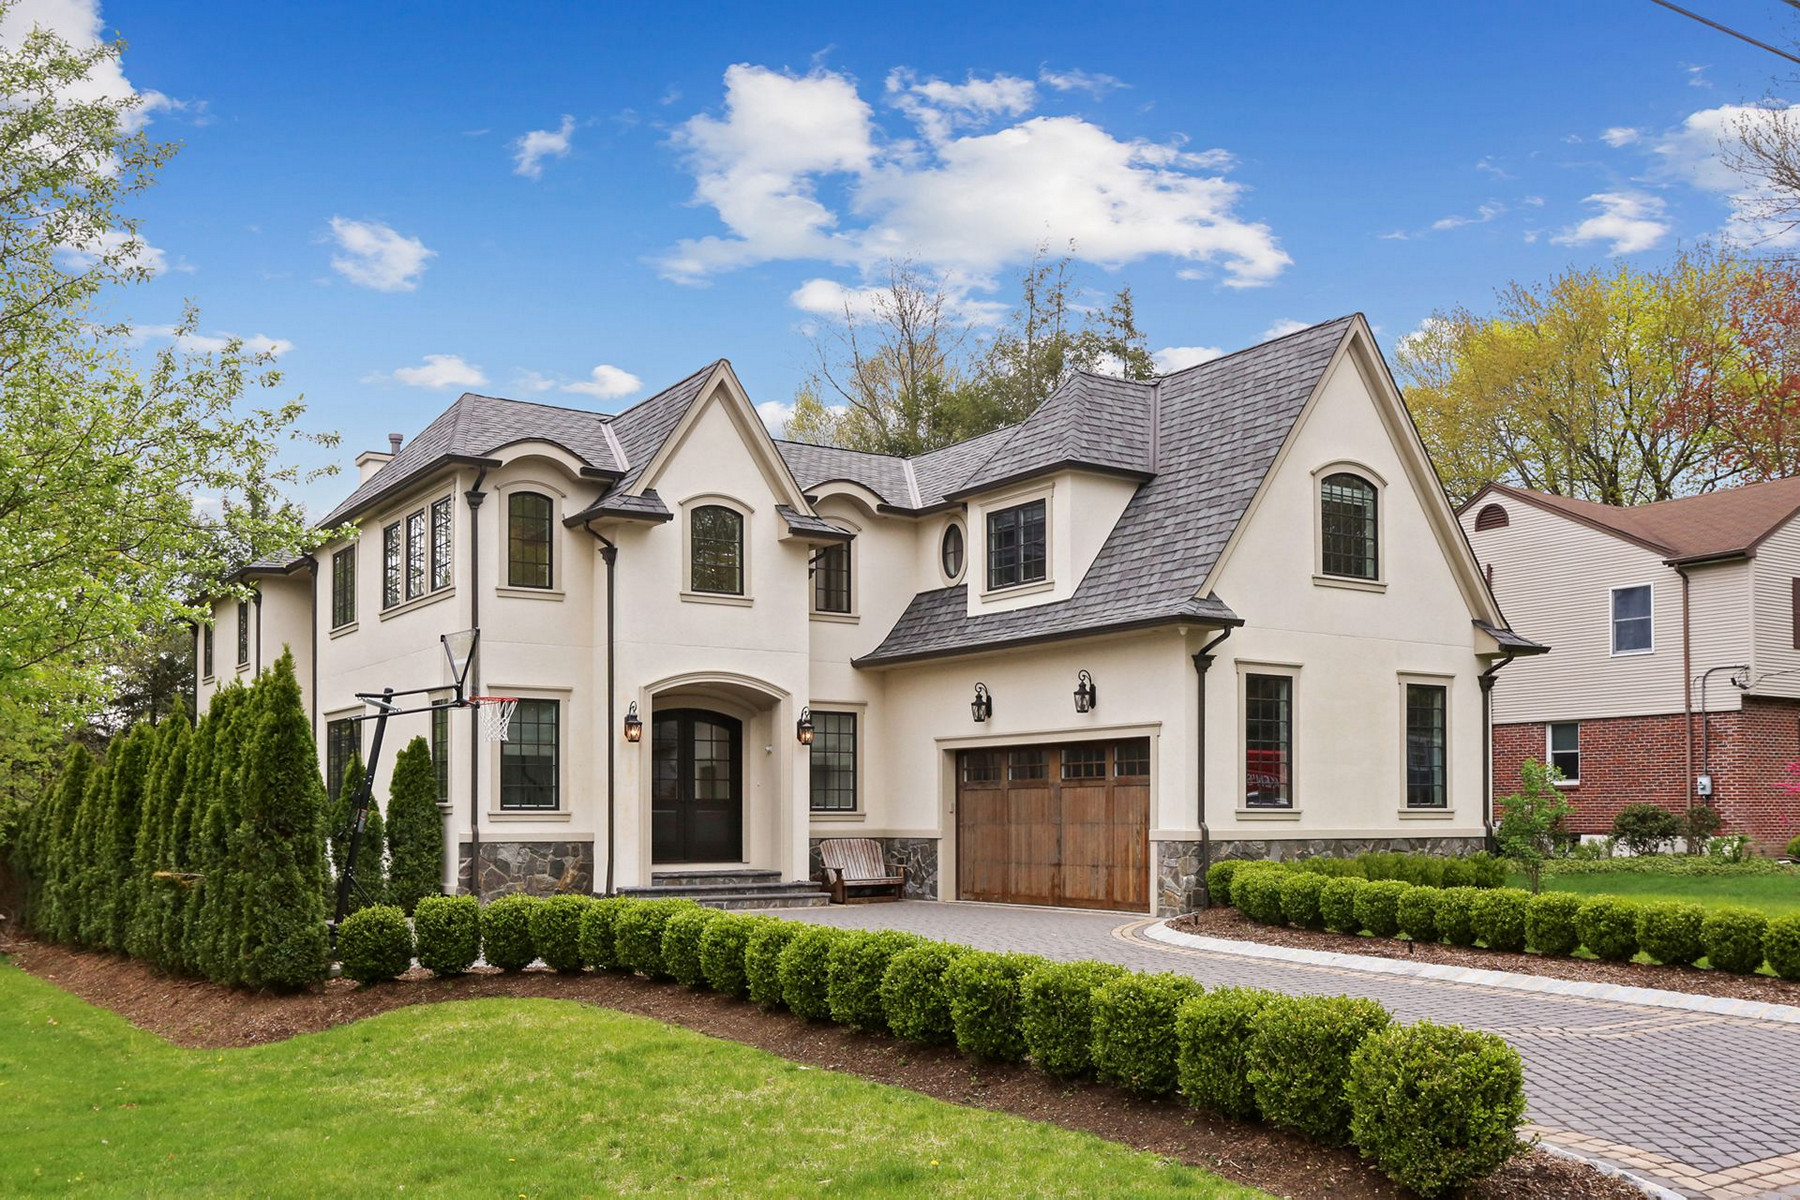 Single Family Homes for Sale at Exquisite 9 John Street Demarest, New Jersey 07627 United States